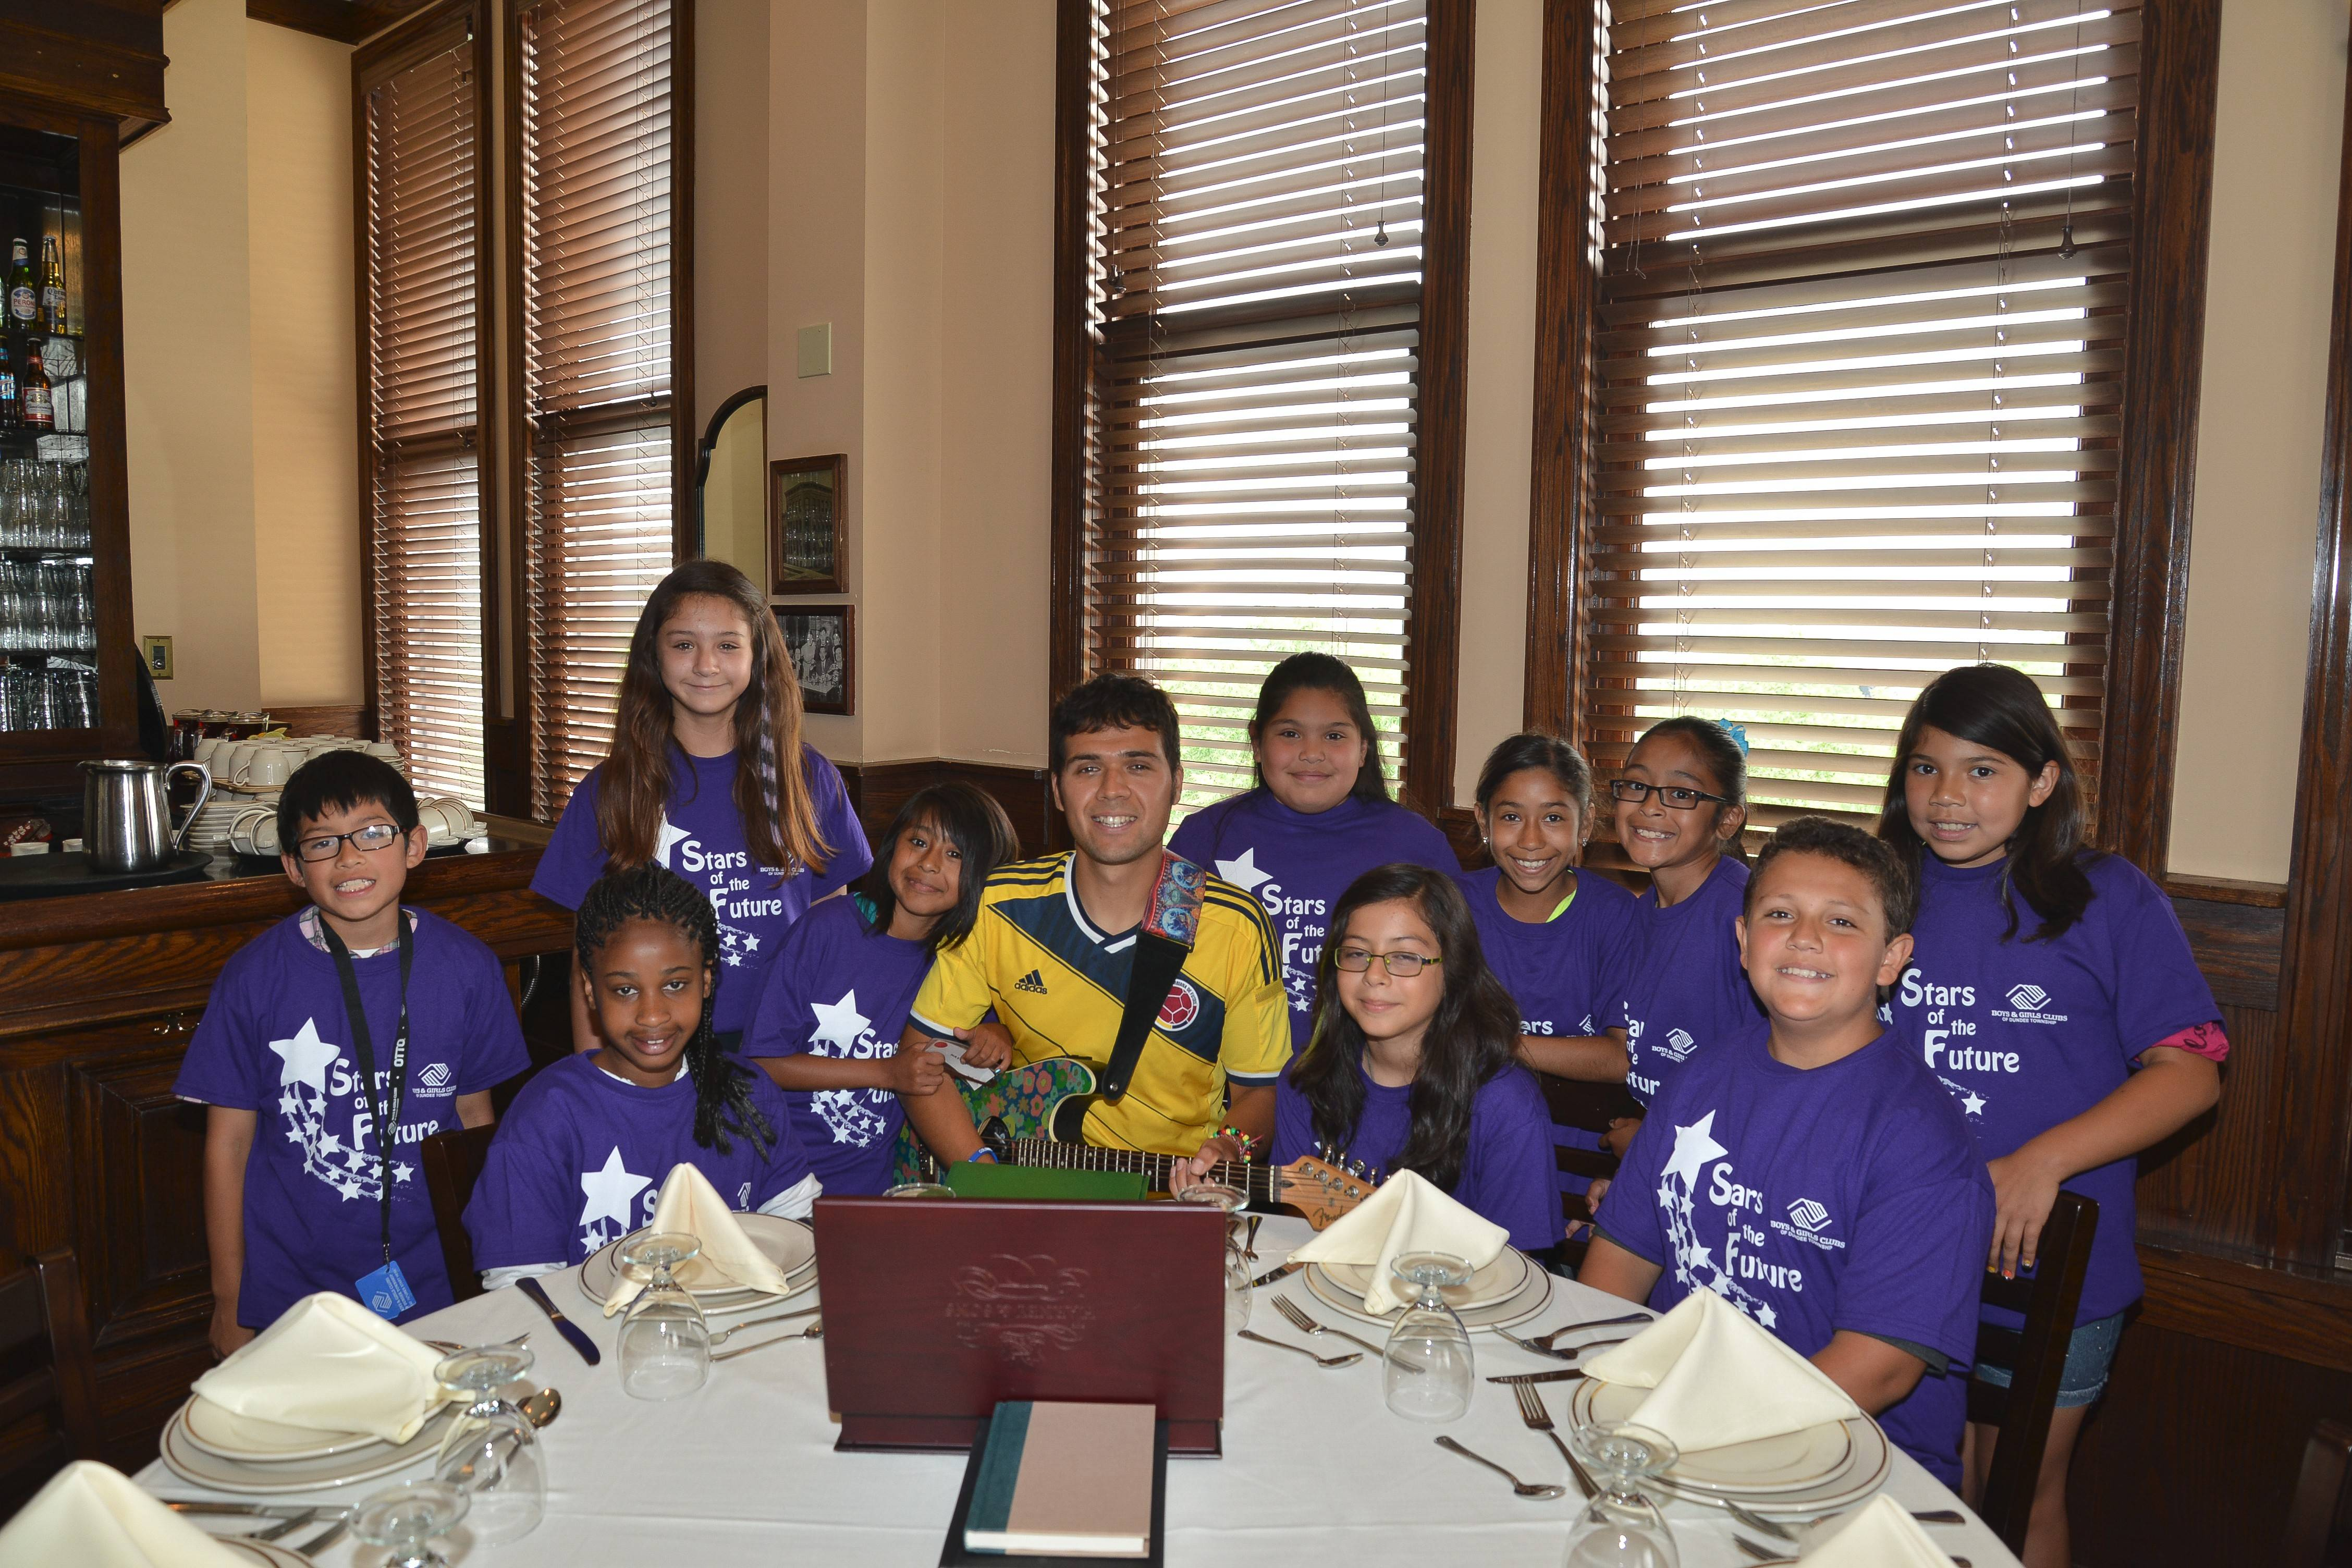 C.J. Solarte, choir director for the Boys and Girls Club of Dundee Township, with his elementary age choir at the United Way luncheon June 19. The youngsters opened the luncheon with The Star-Spangled Banner, followed by two other numbers.